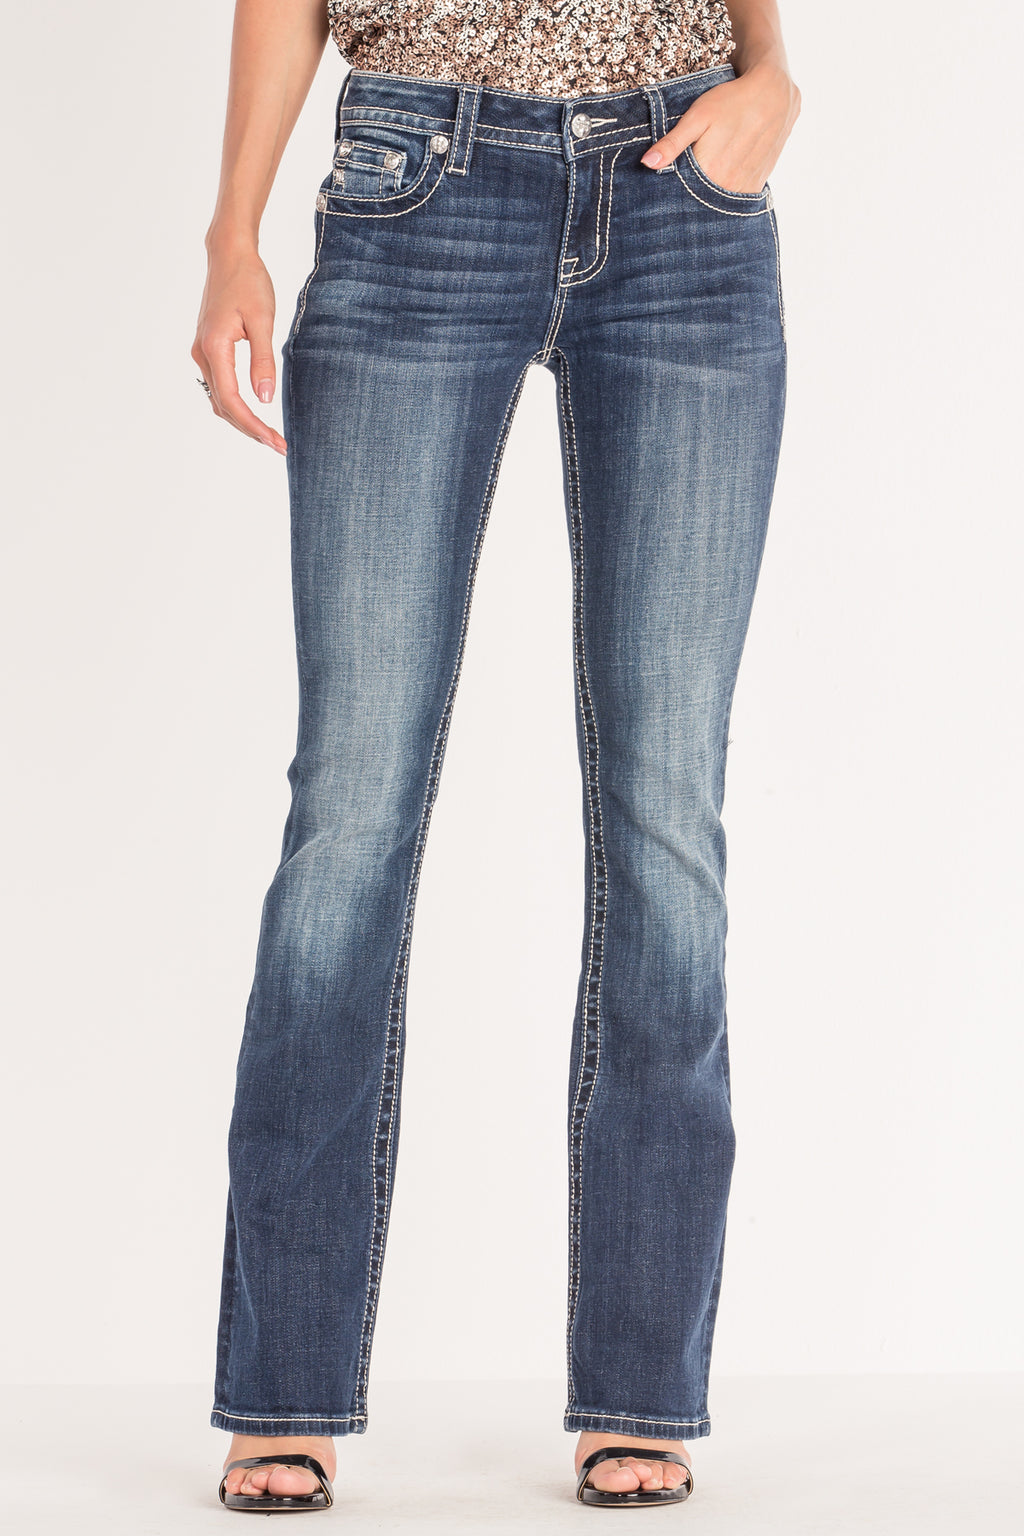 5f2b8d471a TRIBAL INSPIRED EMBROIDERED BOOTCUT JEANS - front